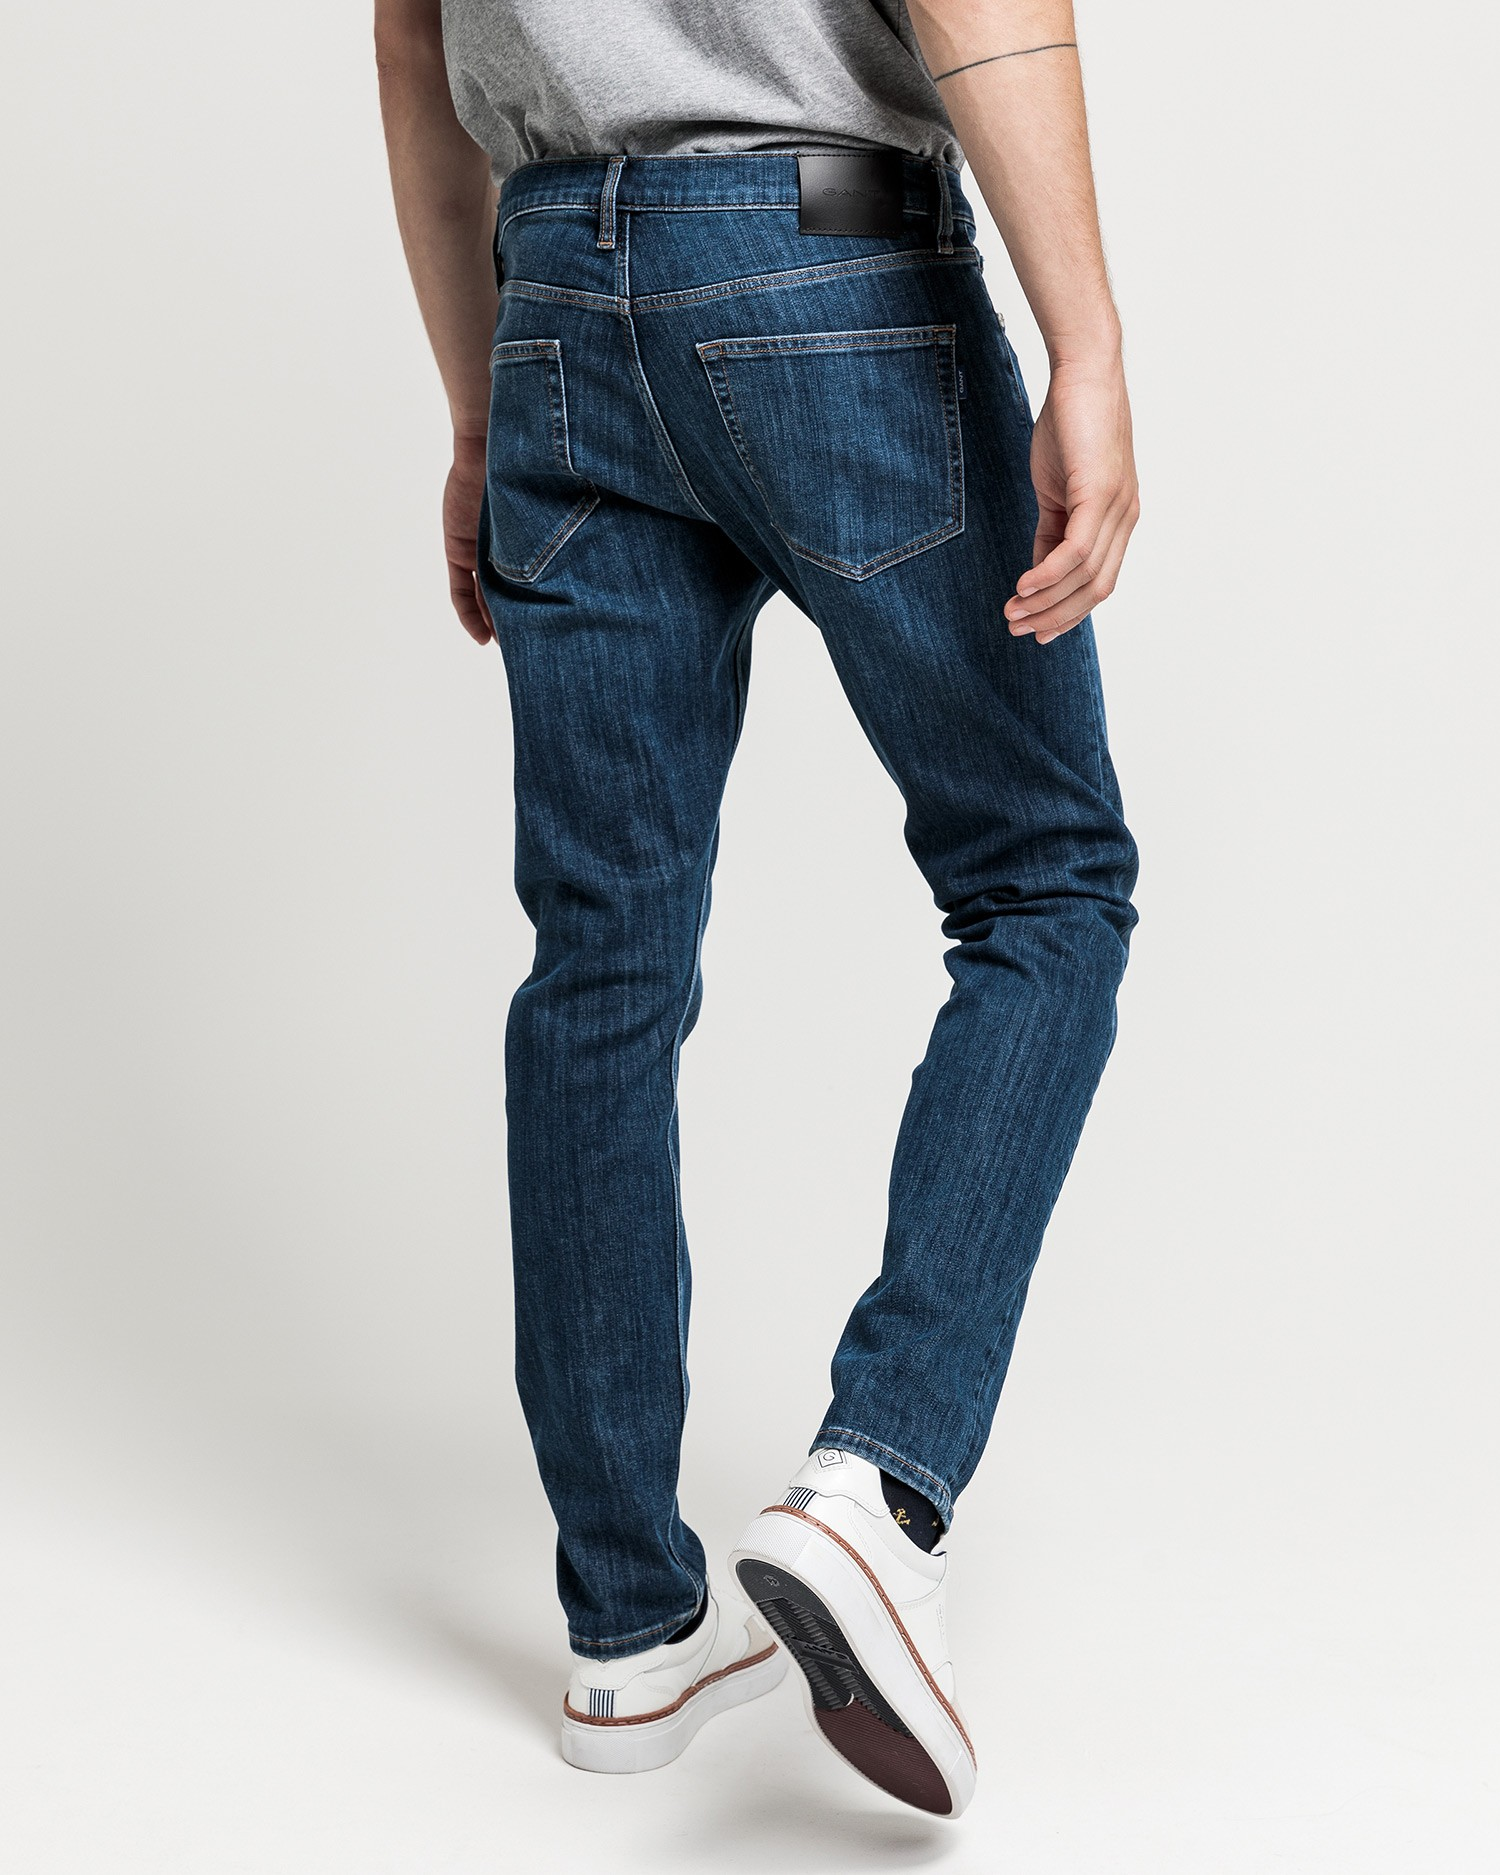 GANT Men's Tp Tapered Jeans - 1002803